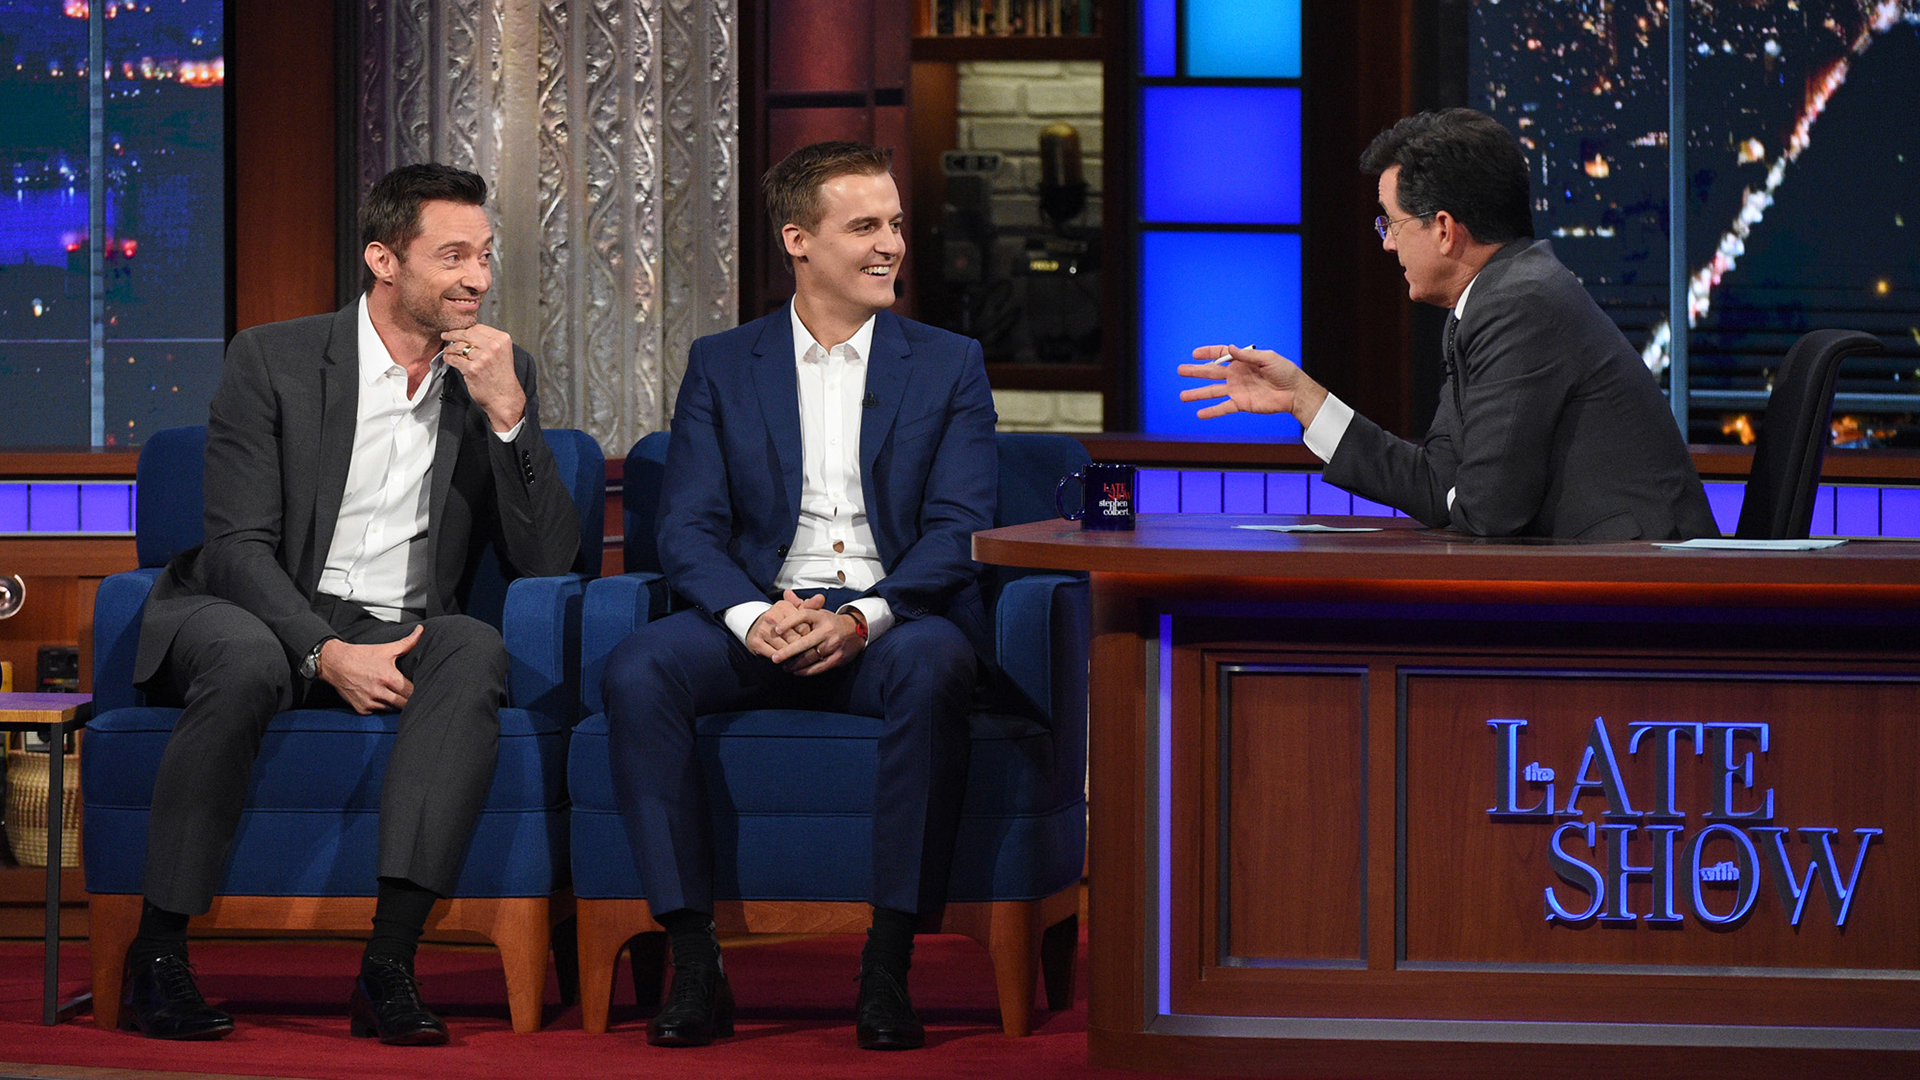 Hugh Jackman, Hugh Evans, and Stephen Colbert